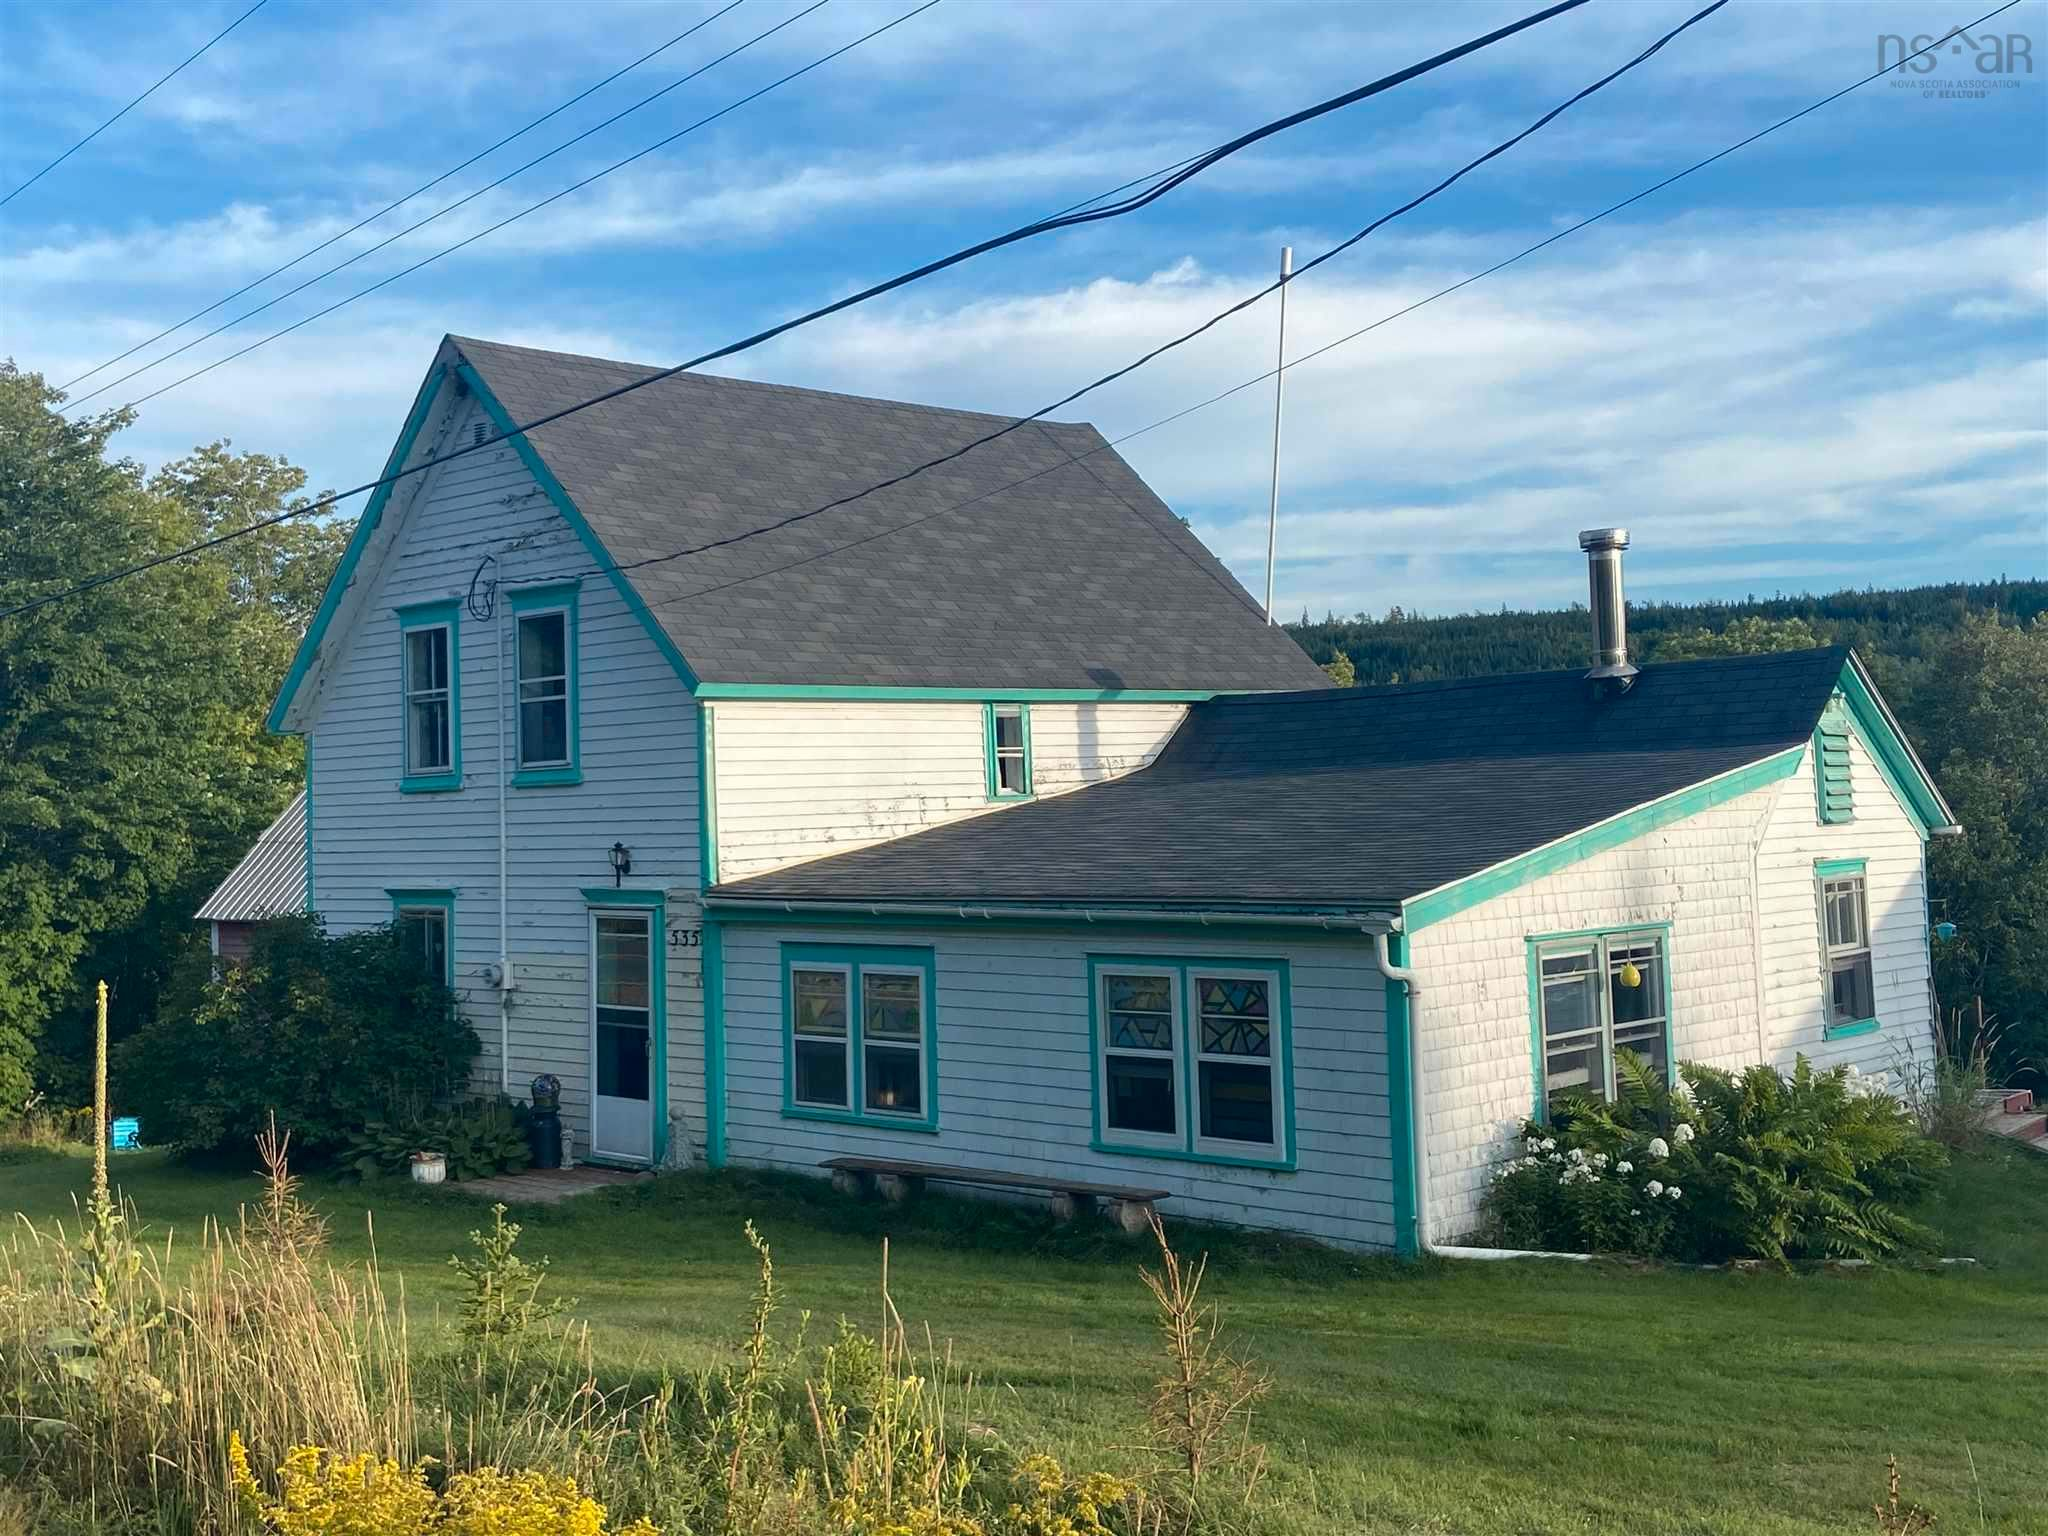 Main Photo: 535 East River East Side Road in Glencoe: 108-Rural Pictou County Residential for sale (Northern Region)  : MLS®# 202122288